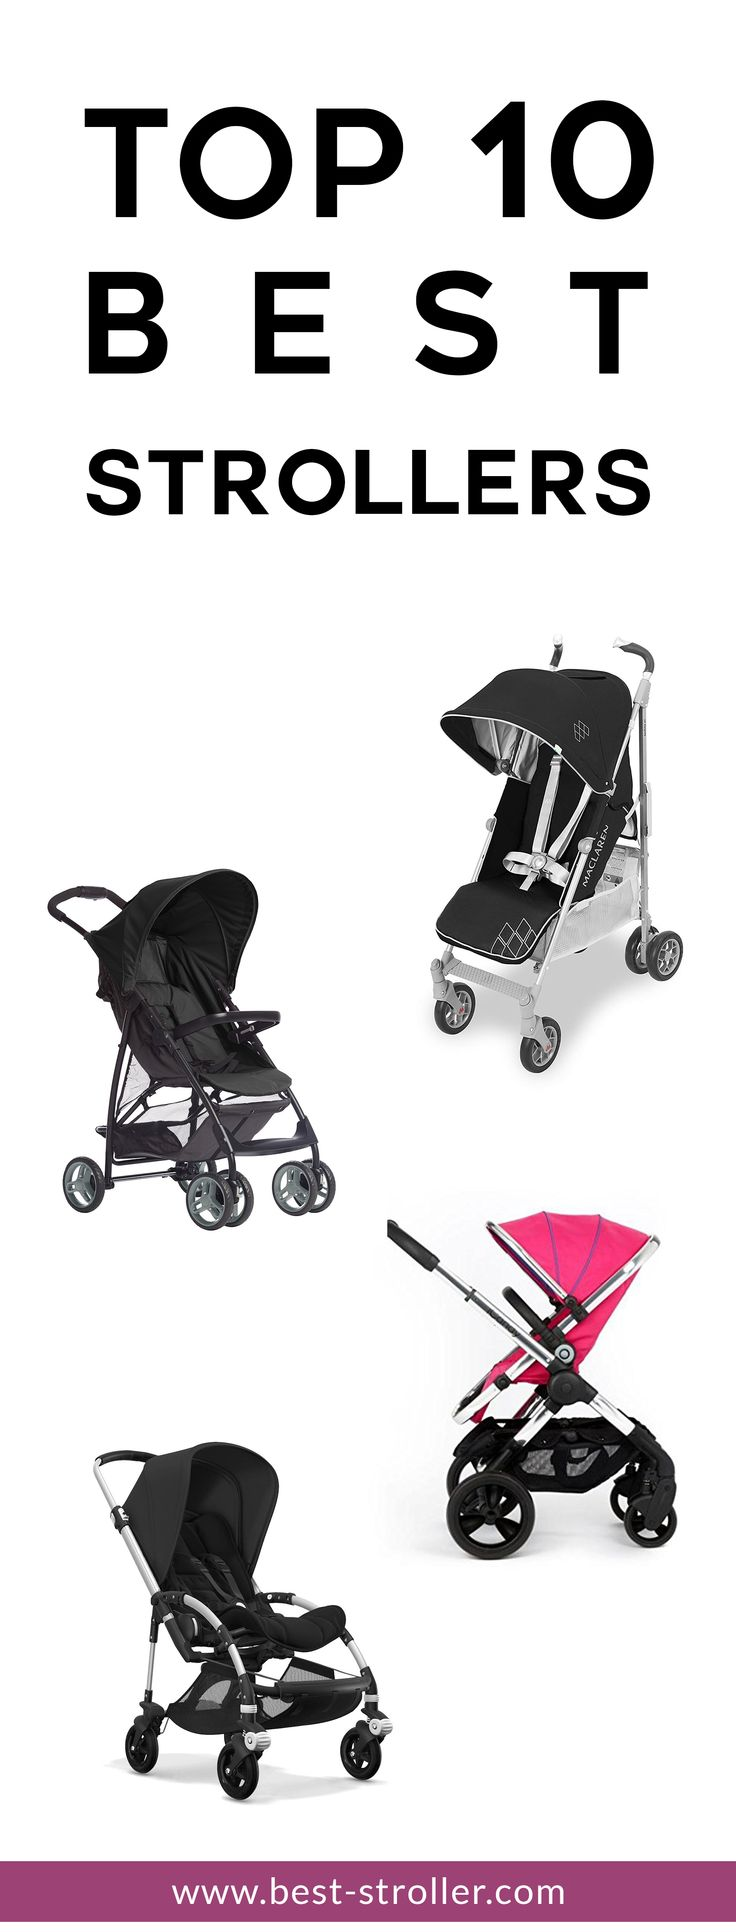 Find out which is the best stroller for your baby